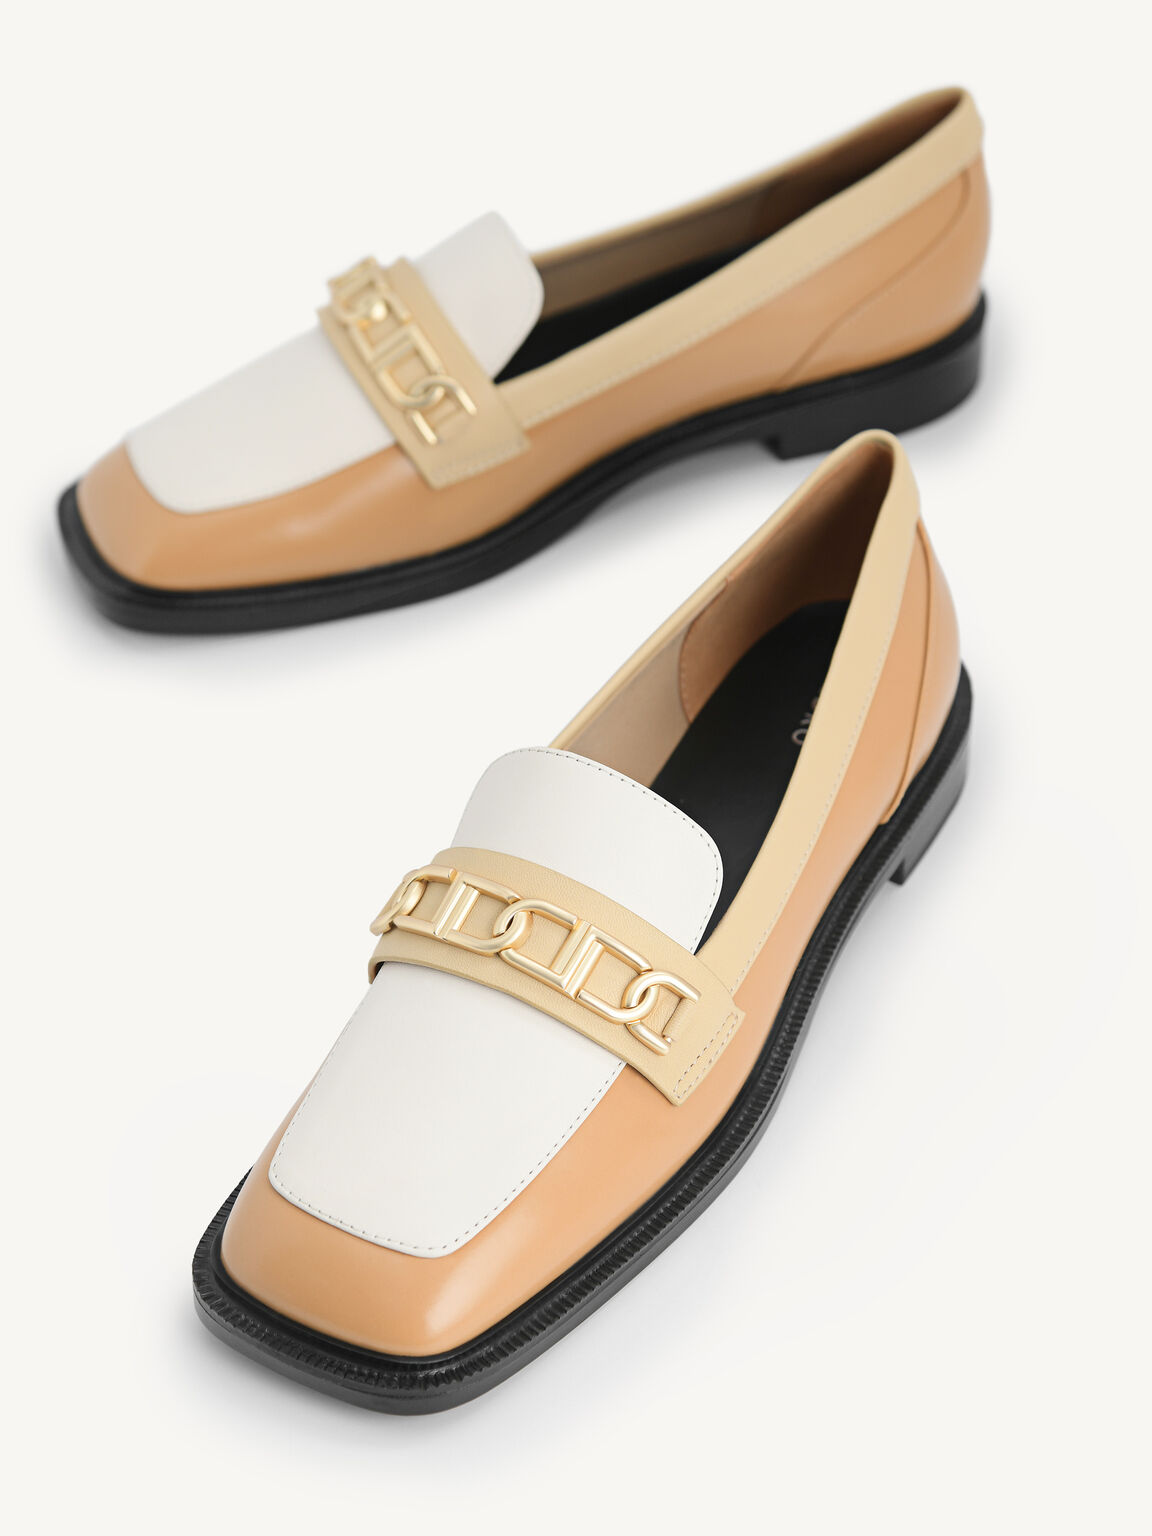 Icon Leather Square Toe Loafers, Camel, hi-res